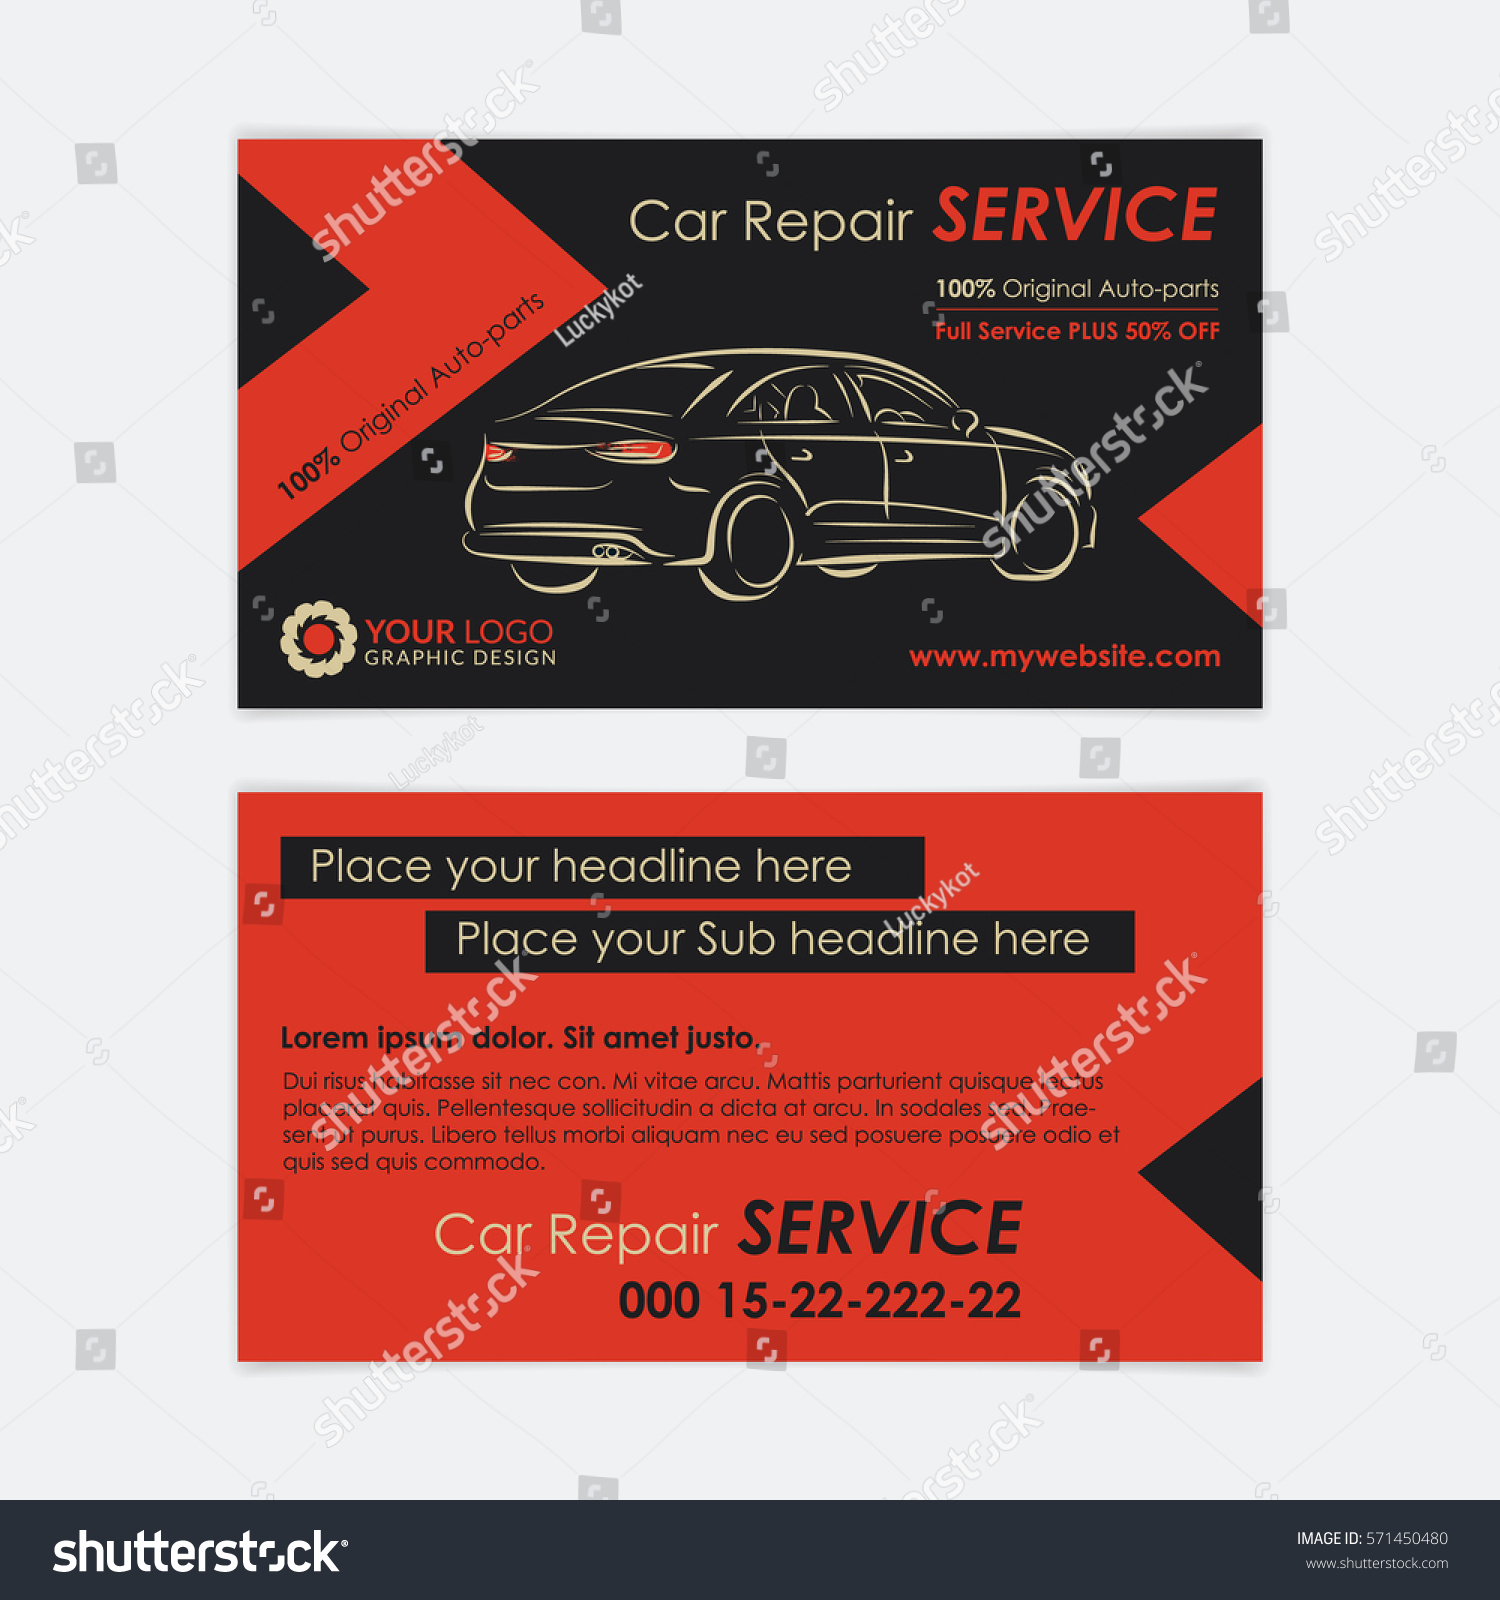 Auto repair business card template create stock vector royalty free auto repair business card template create your own business cards mockup vector illustration wajeb Choice Image